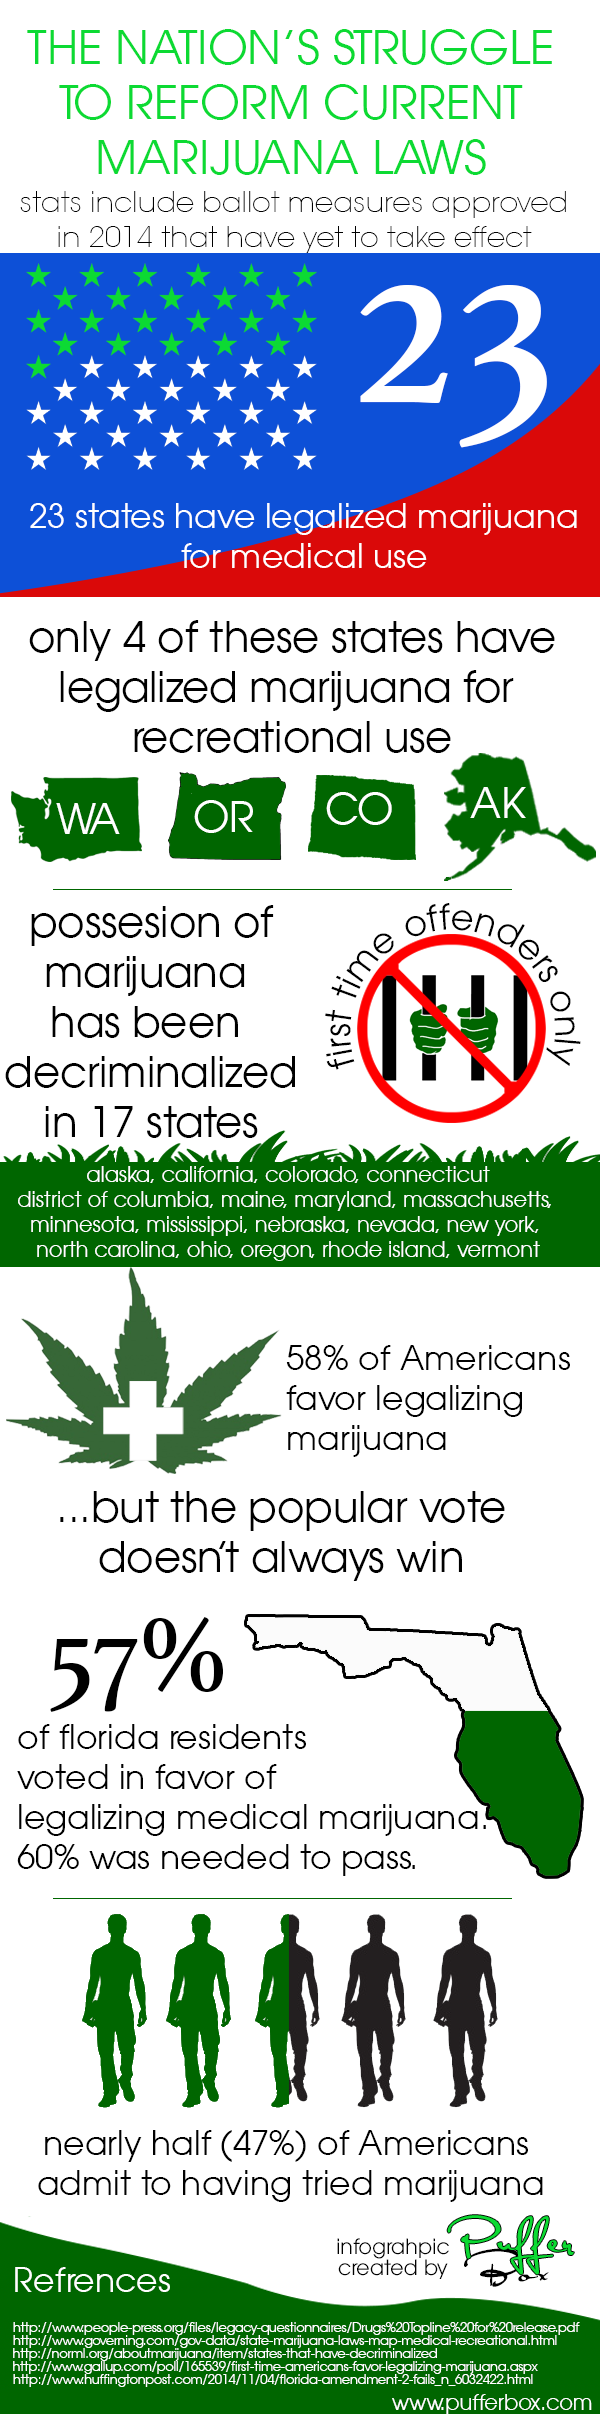 legalization of marijuana infographic